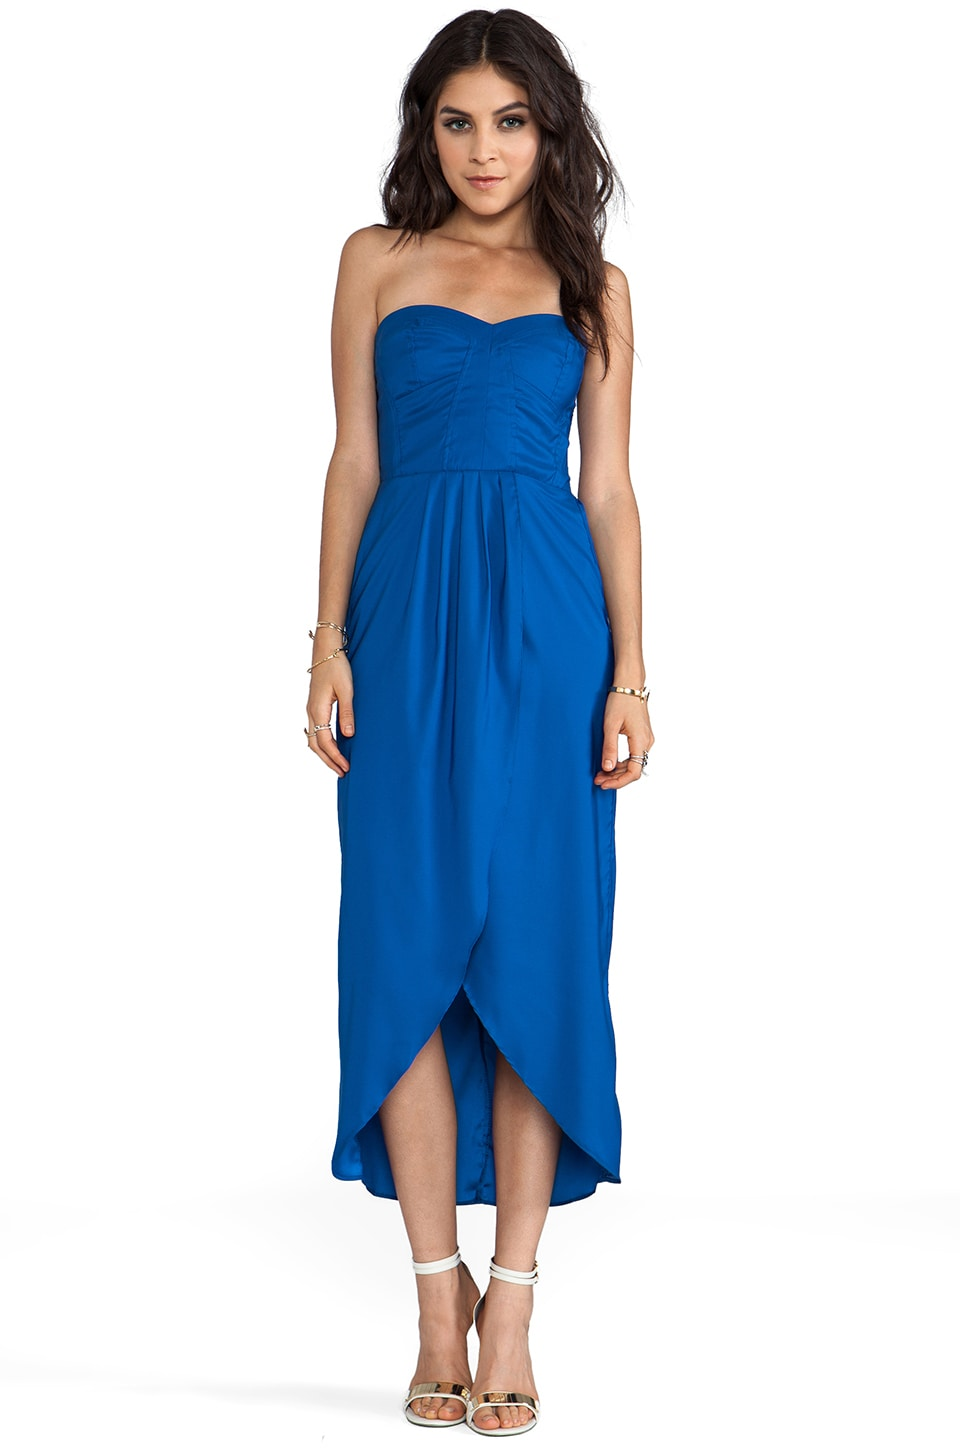 6 SHORE ROAD Naked Love Maxi Dress in Lapis